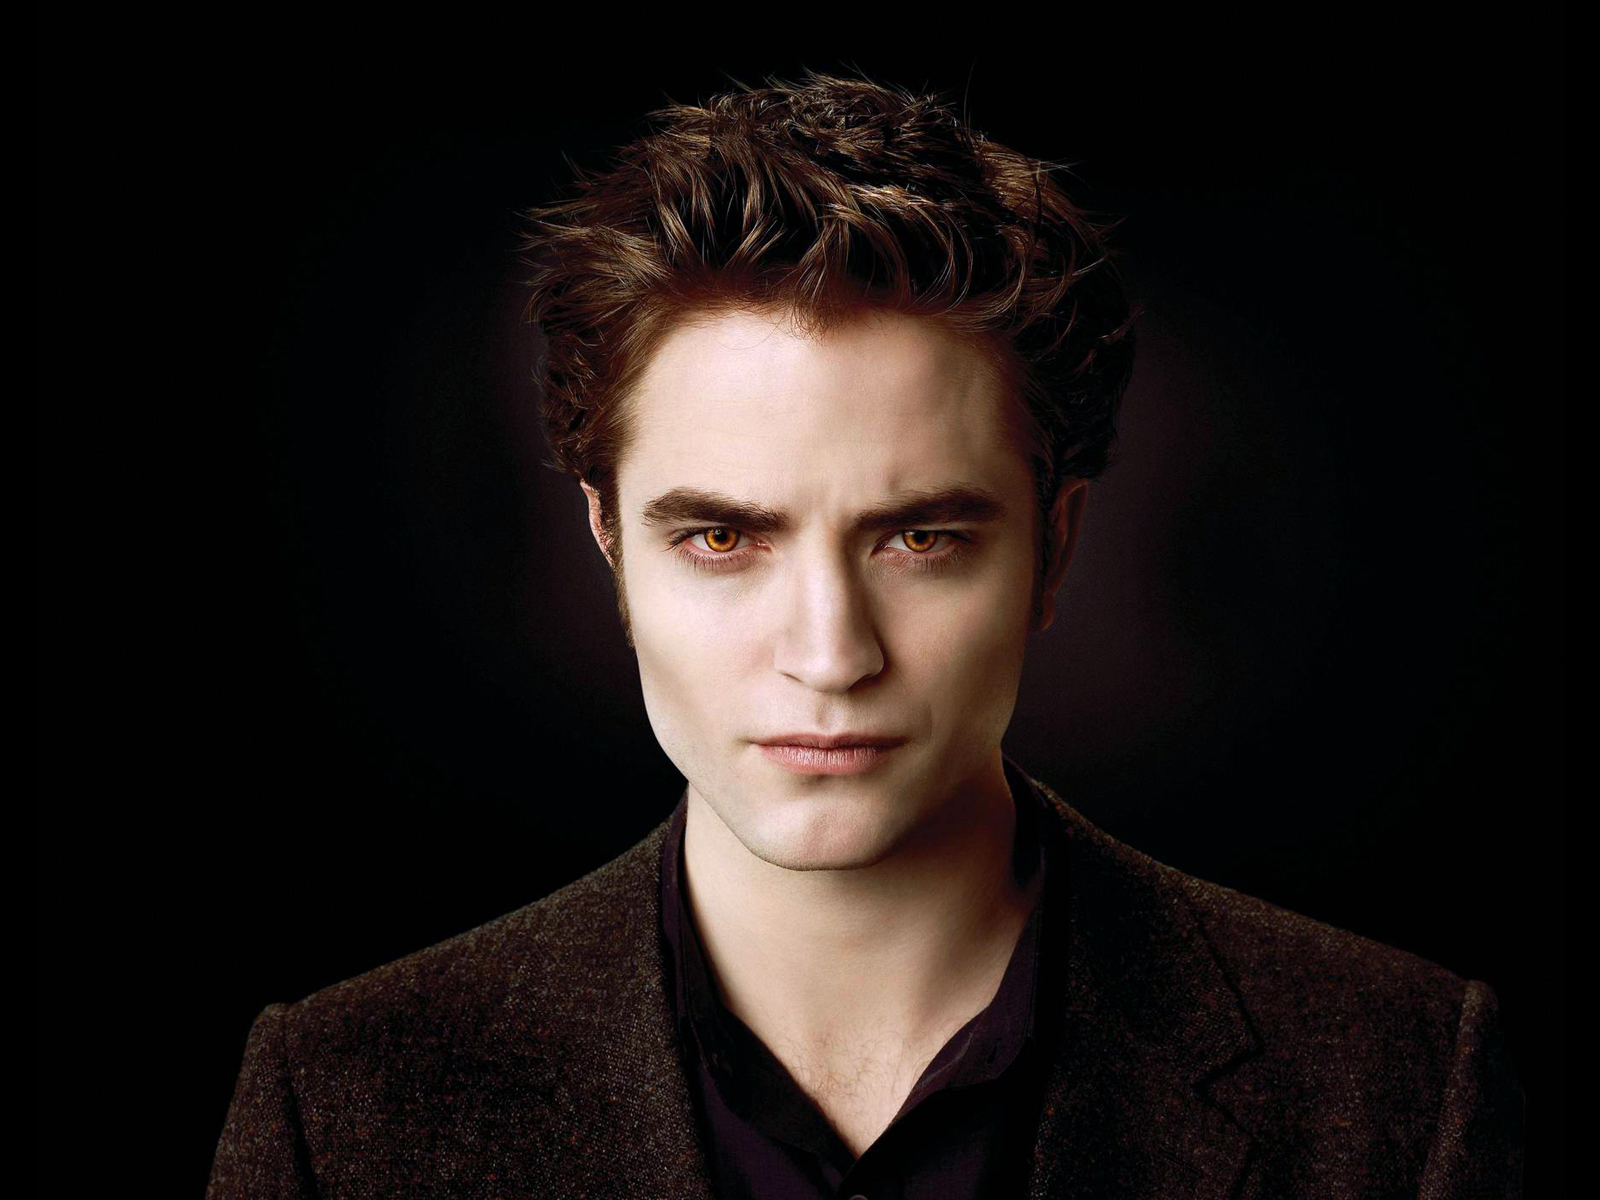 Gaddafi Twilight Star Robert Pattinson Twilight Edward